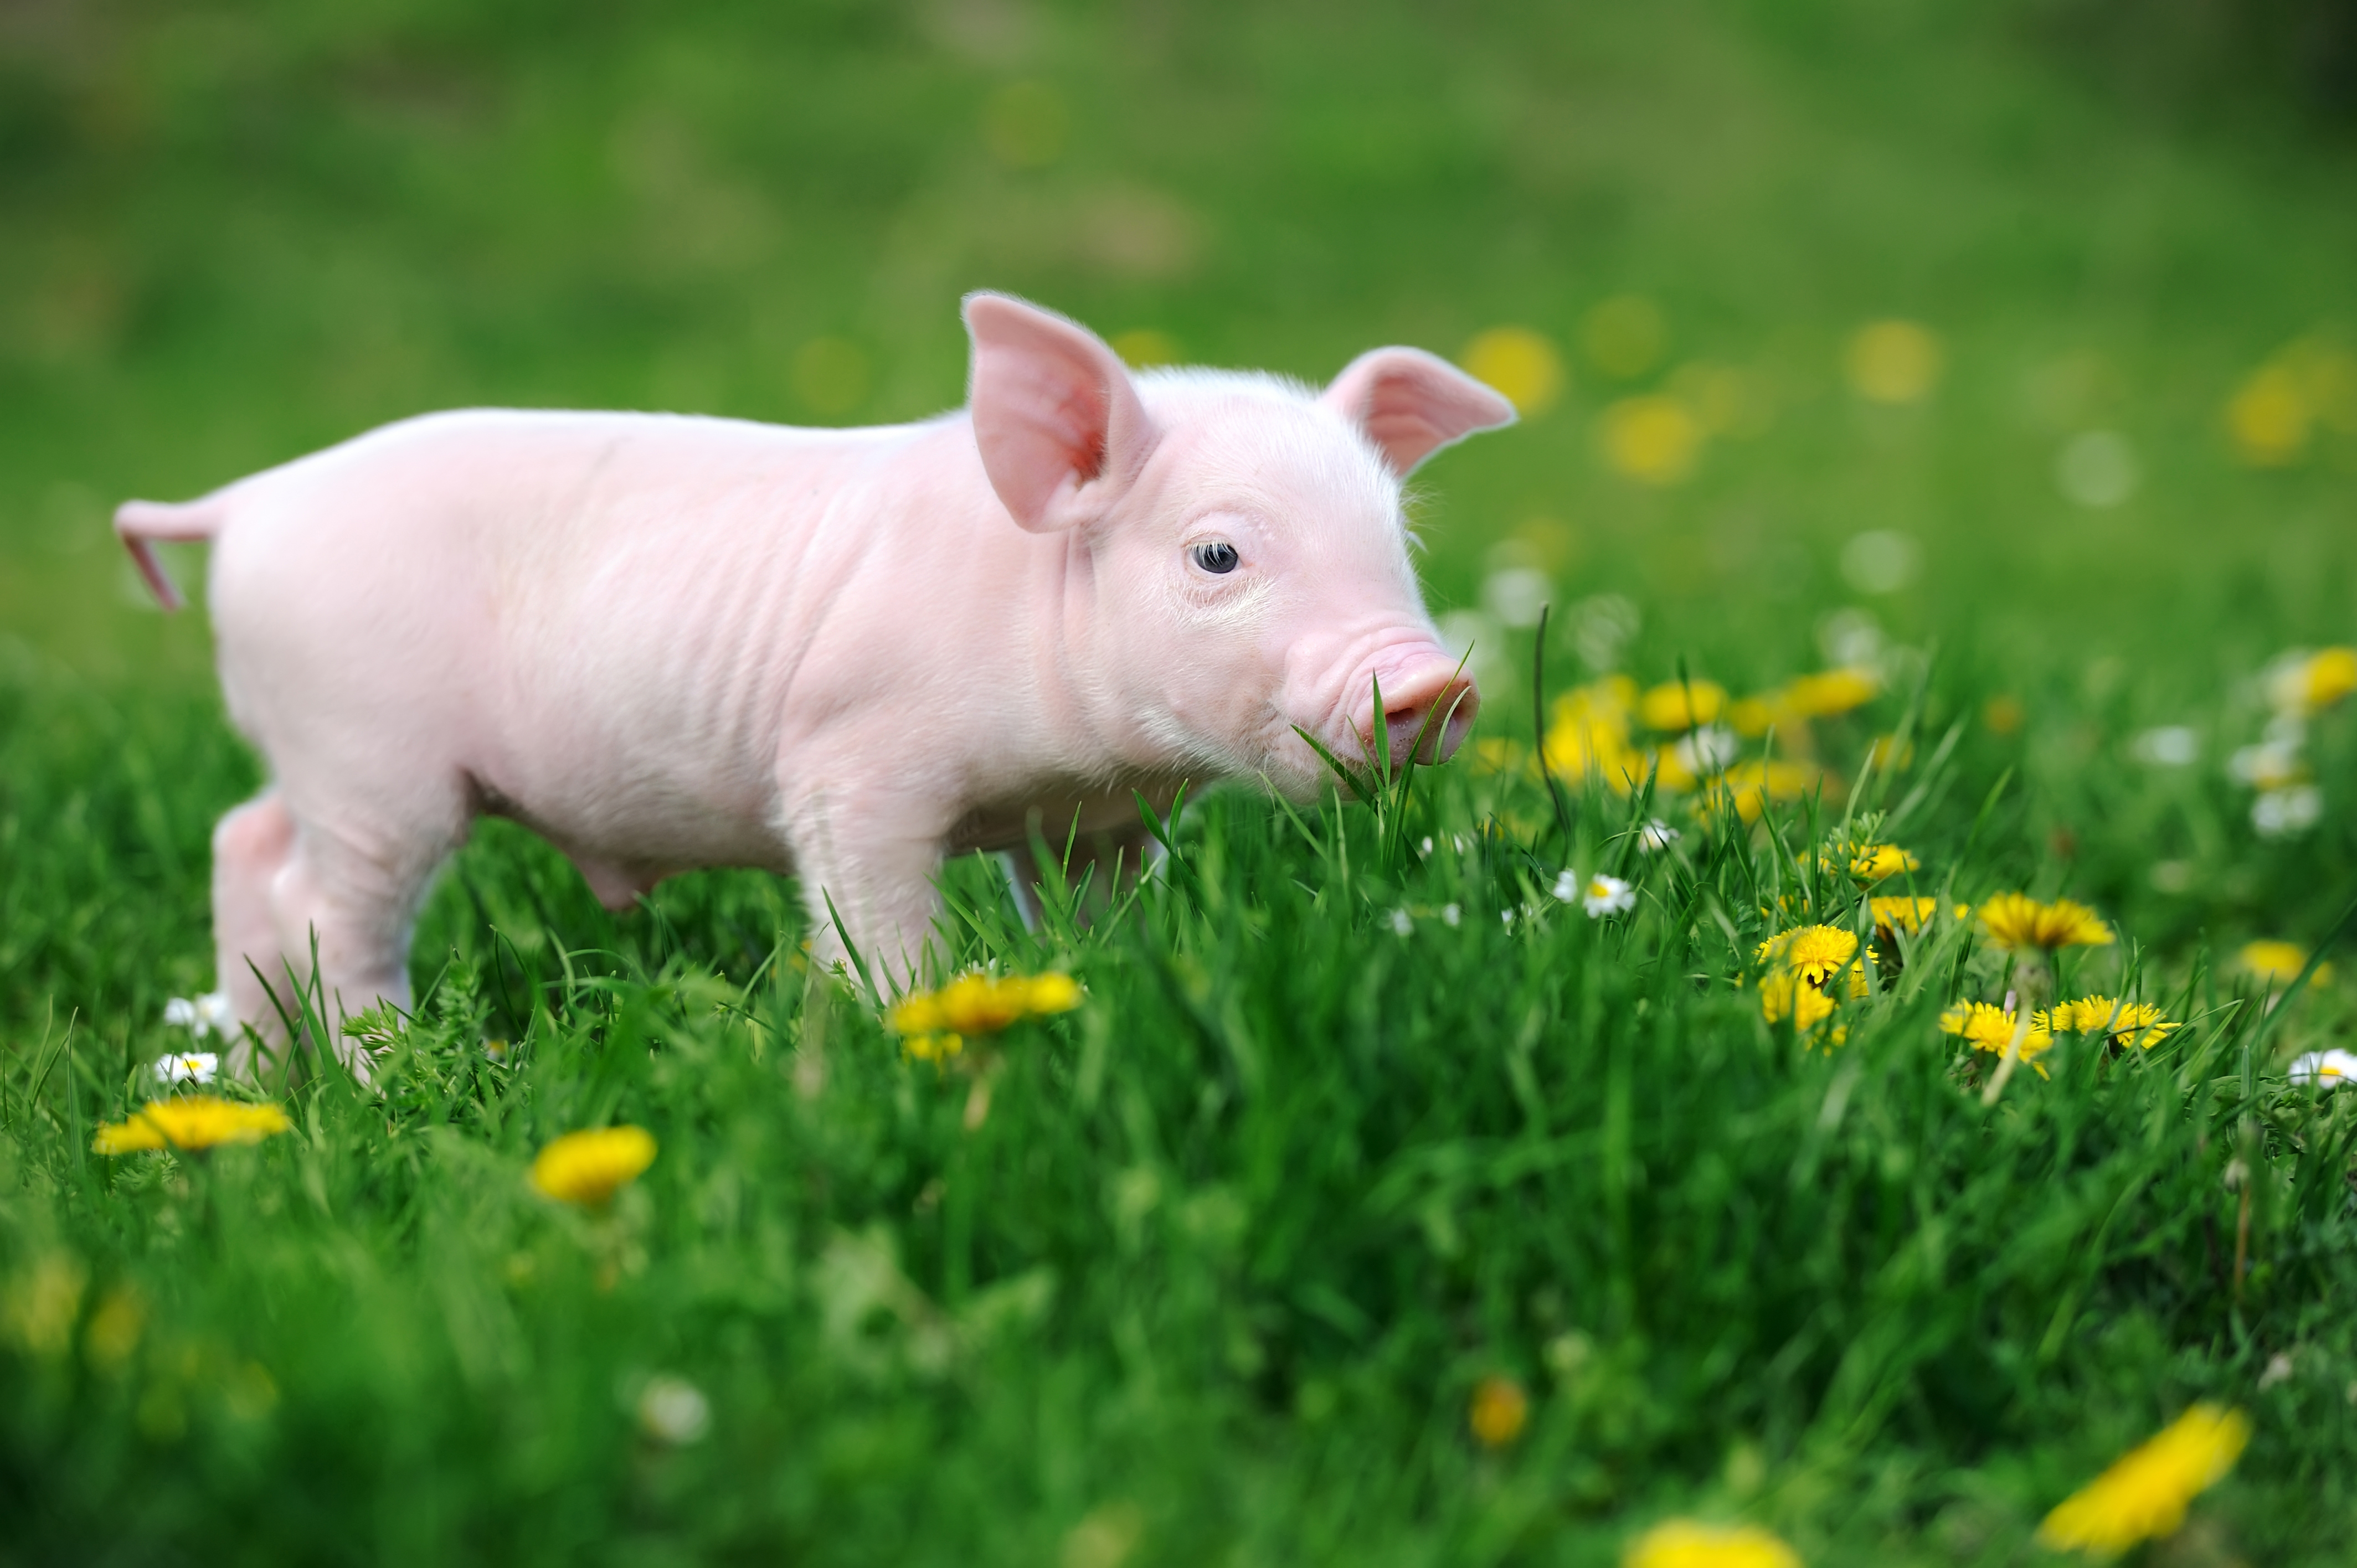 Improve Gut Health in Piglets